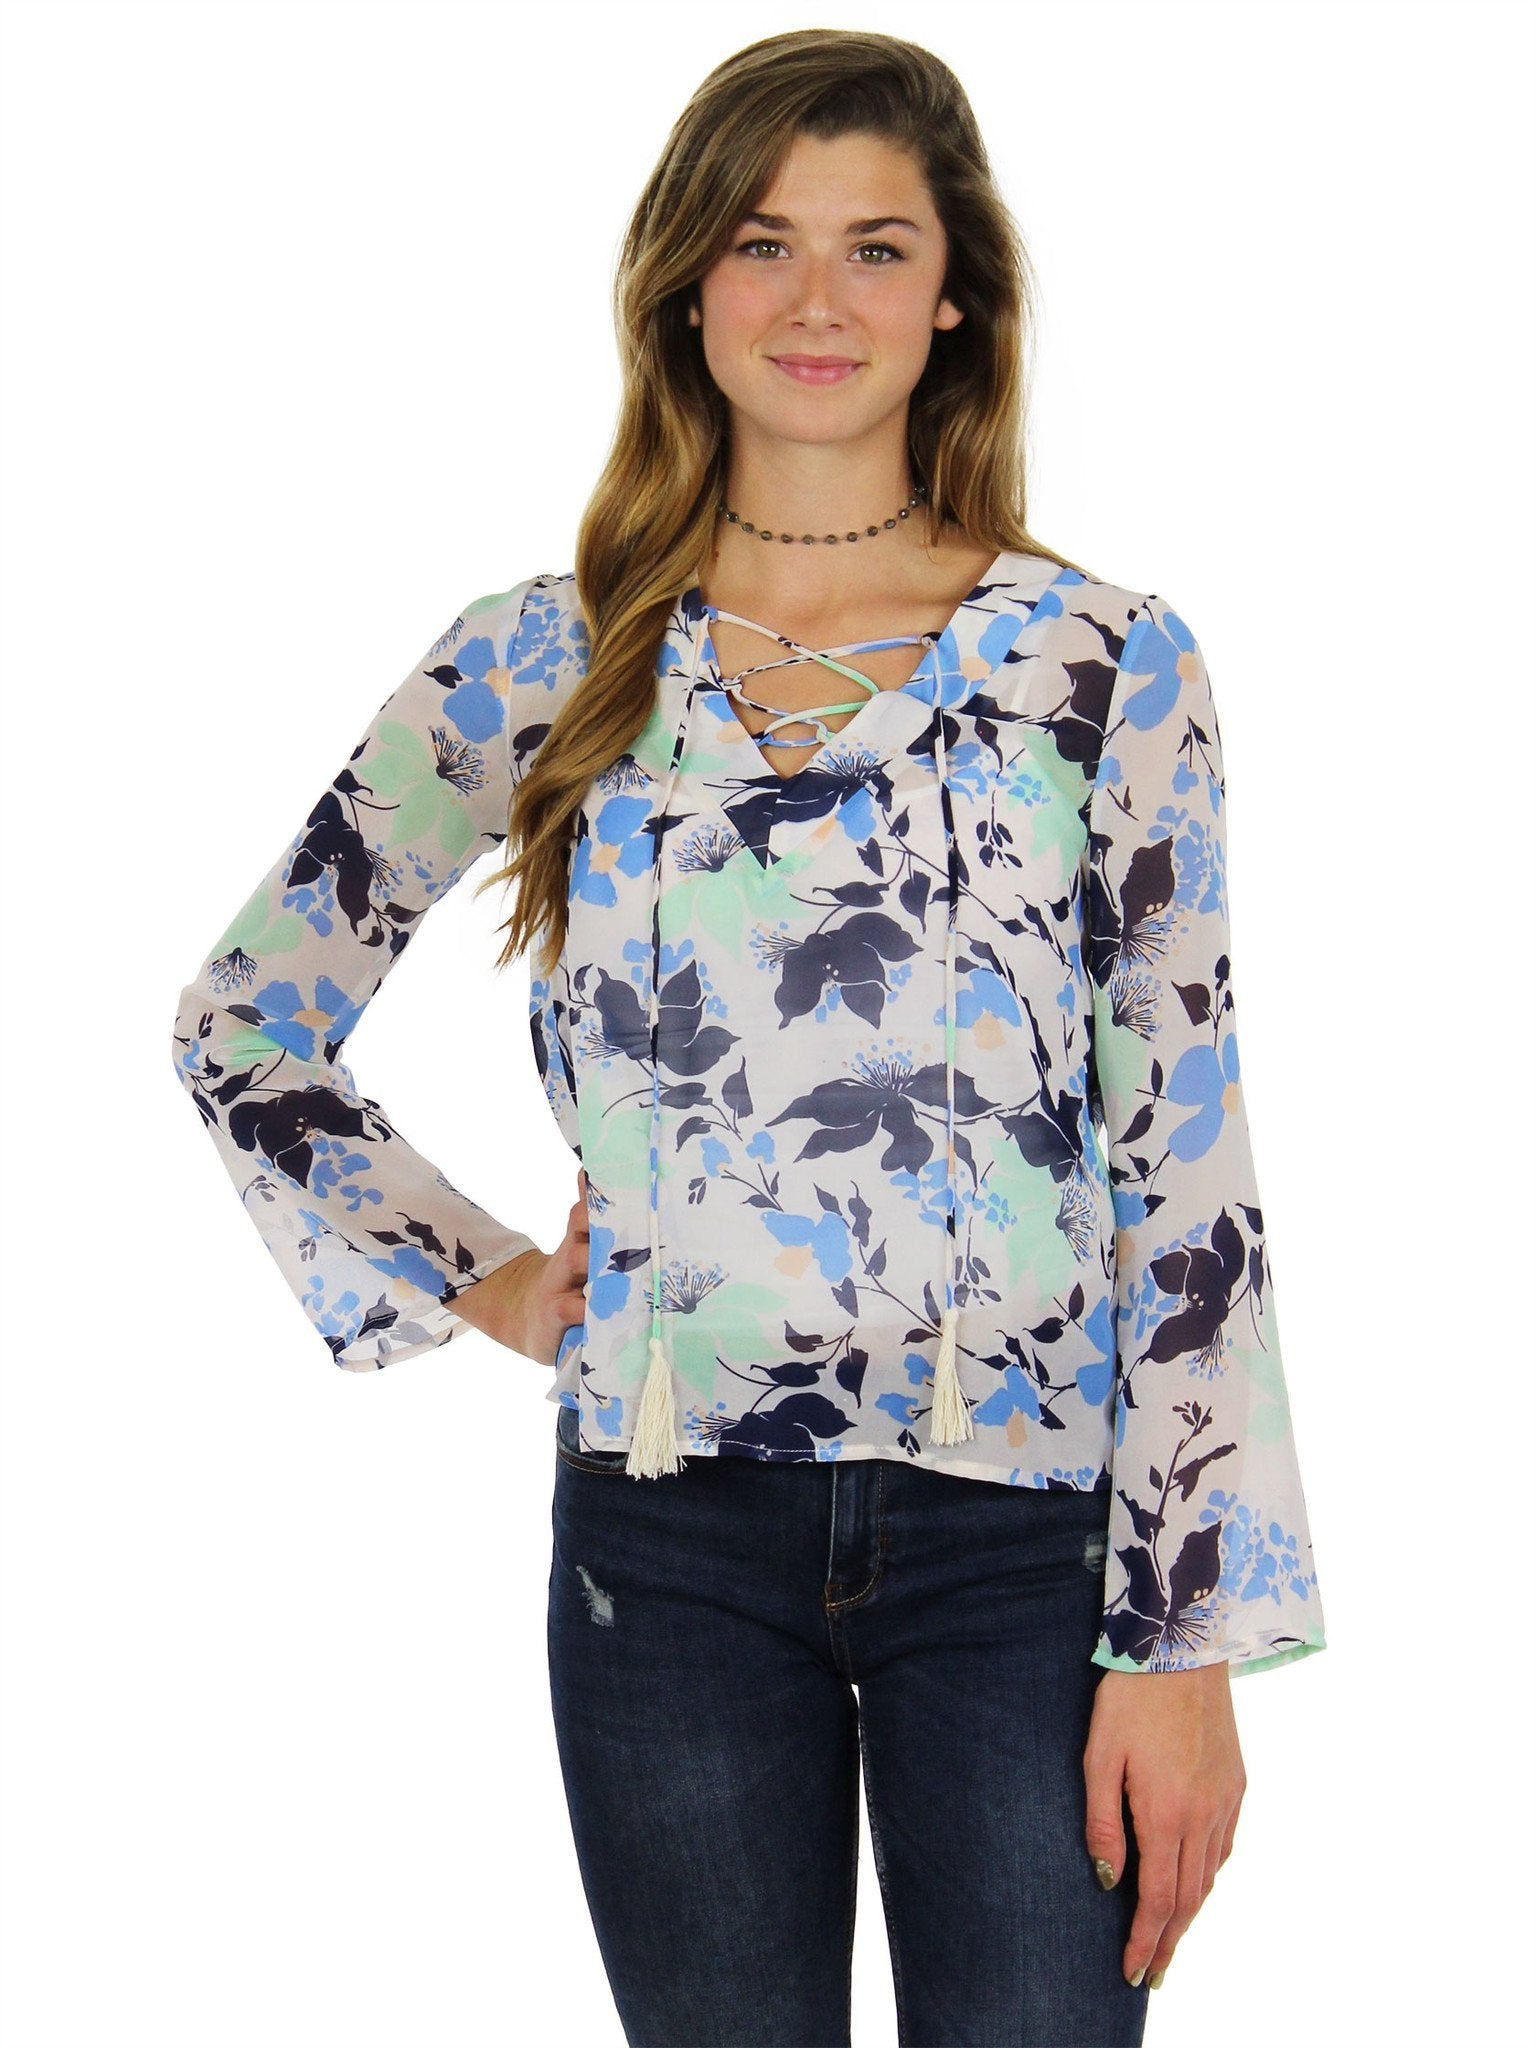 Woman wearing a top rental from Lucca Couture called Lace Up Tassle Long Sleeve Top